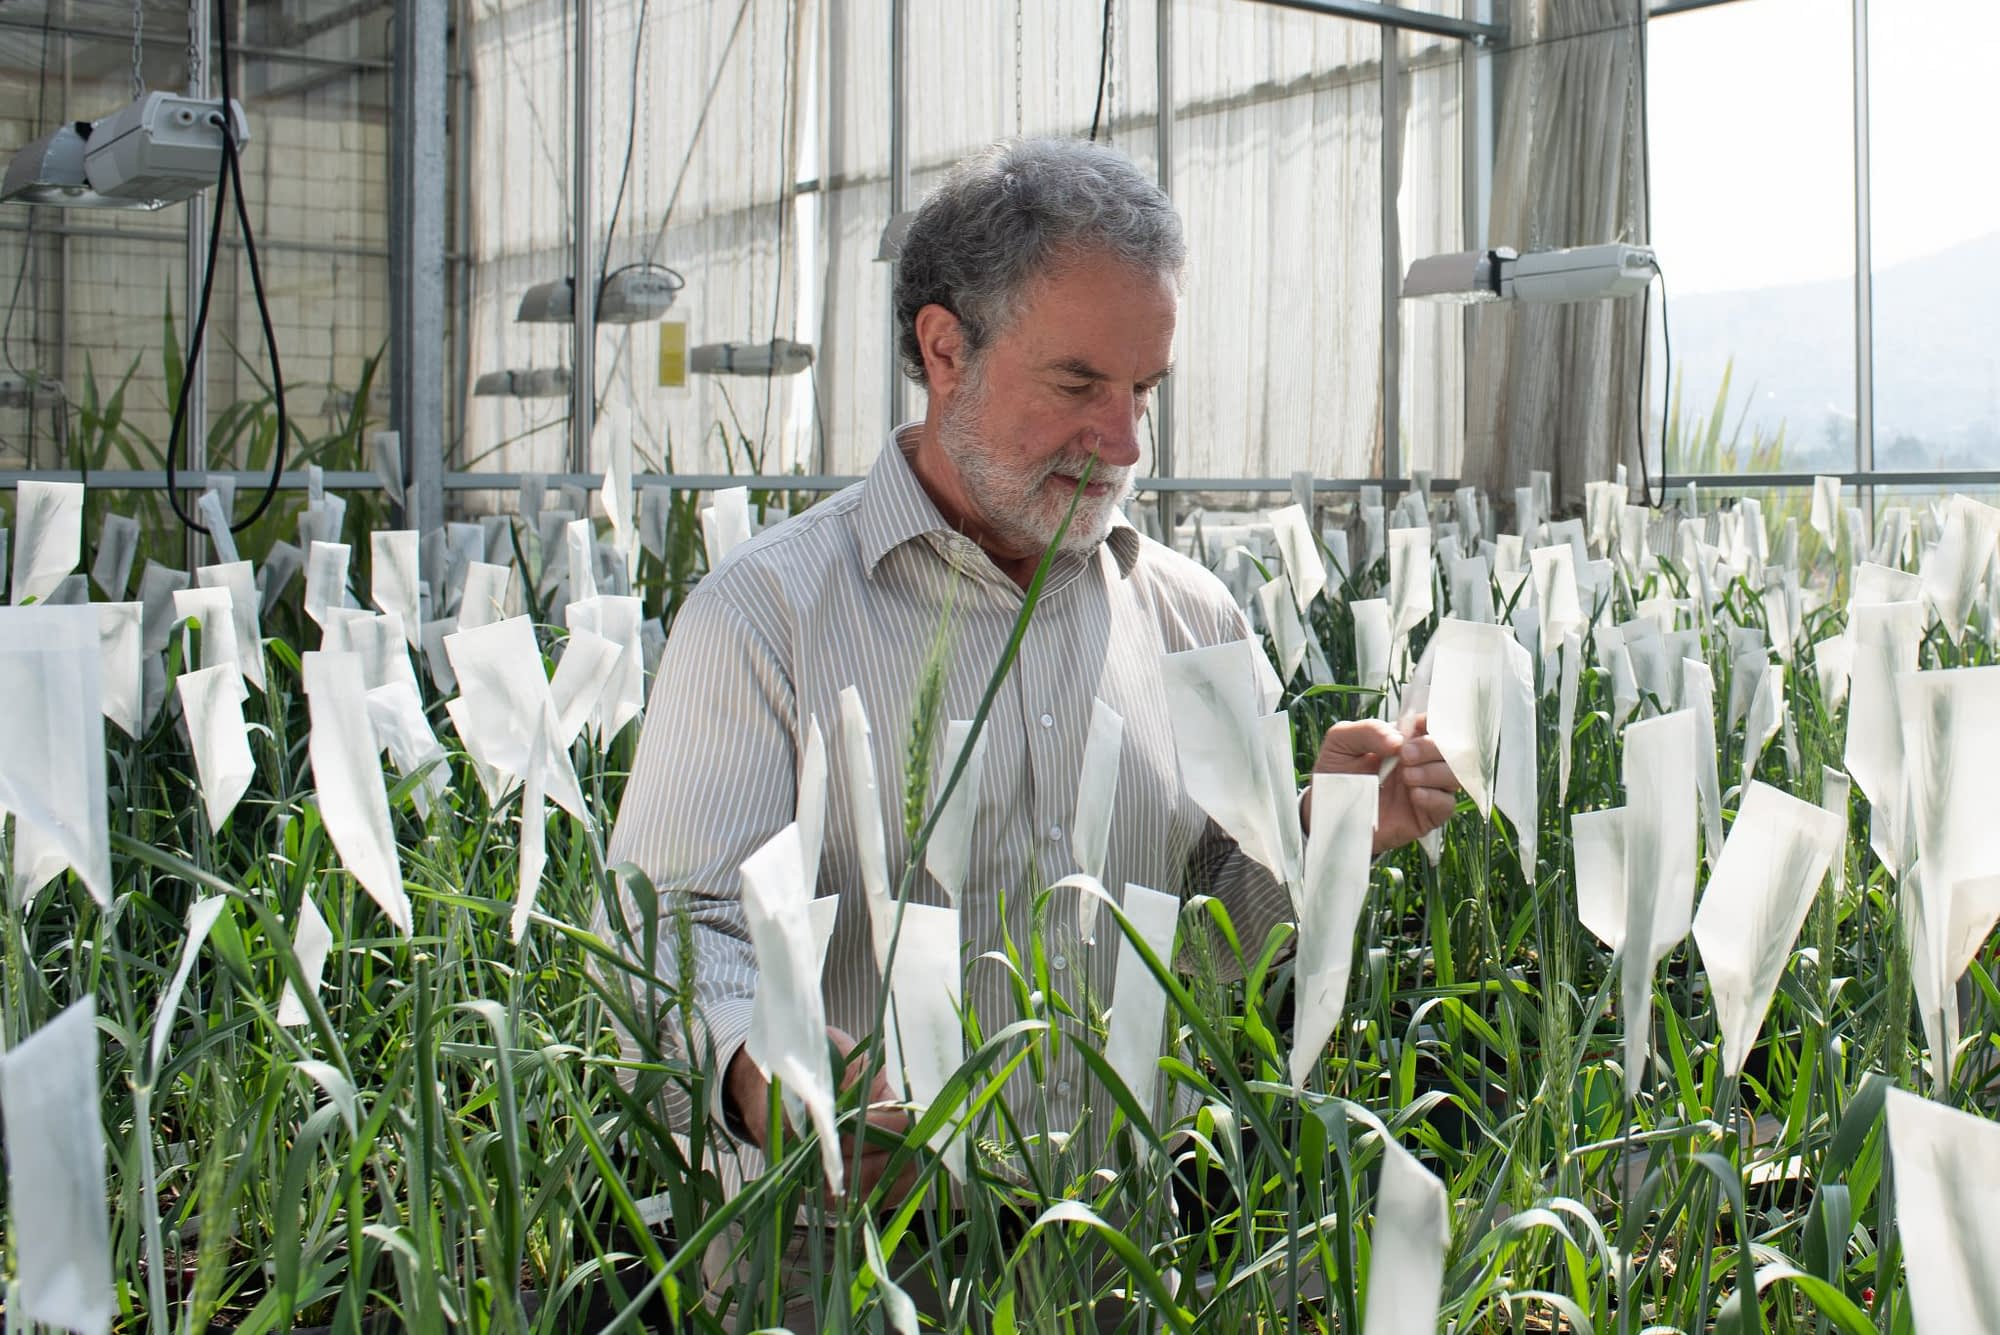 Hans Braun, Director of the Global Wheat Program at the International Maize and Wheat Improvement Center (CIMMYT), inspects wheat plants in the greenhouses. (Photo: Alfonso Cortés/CIMMYT)